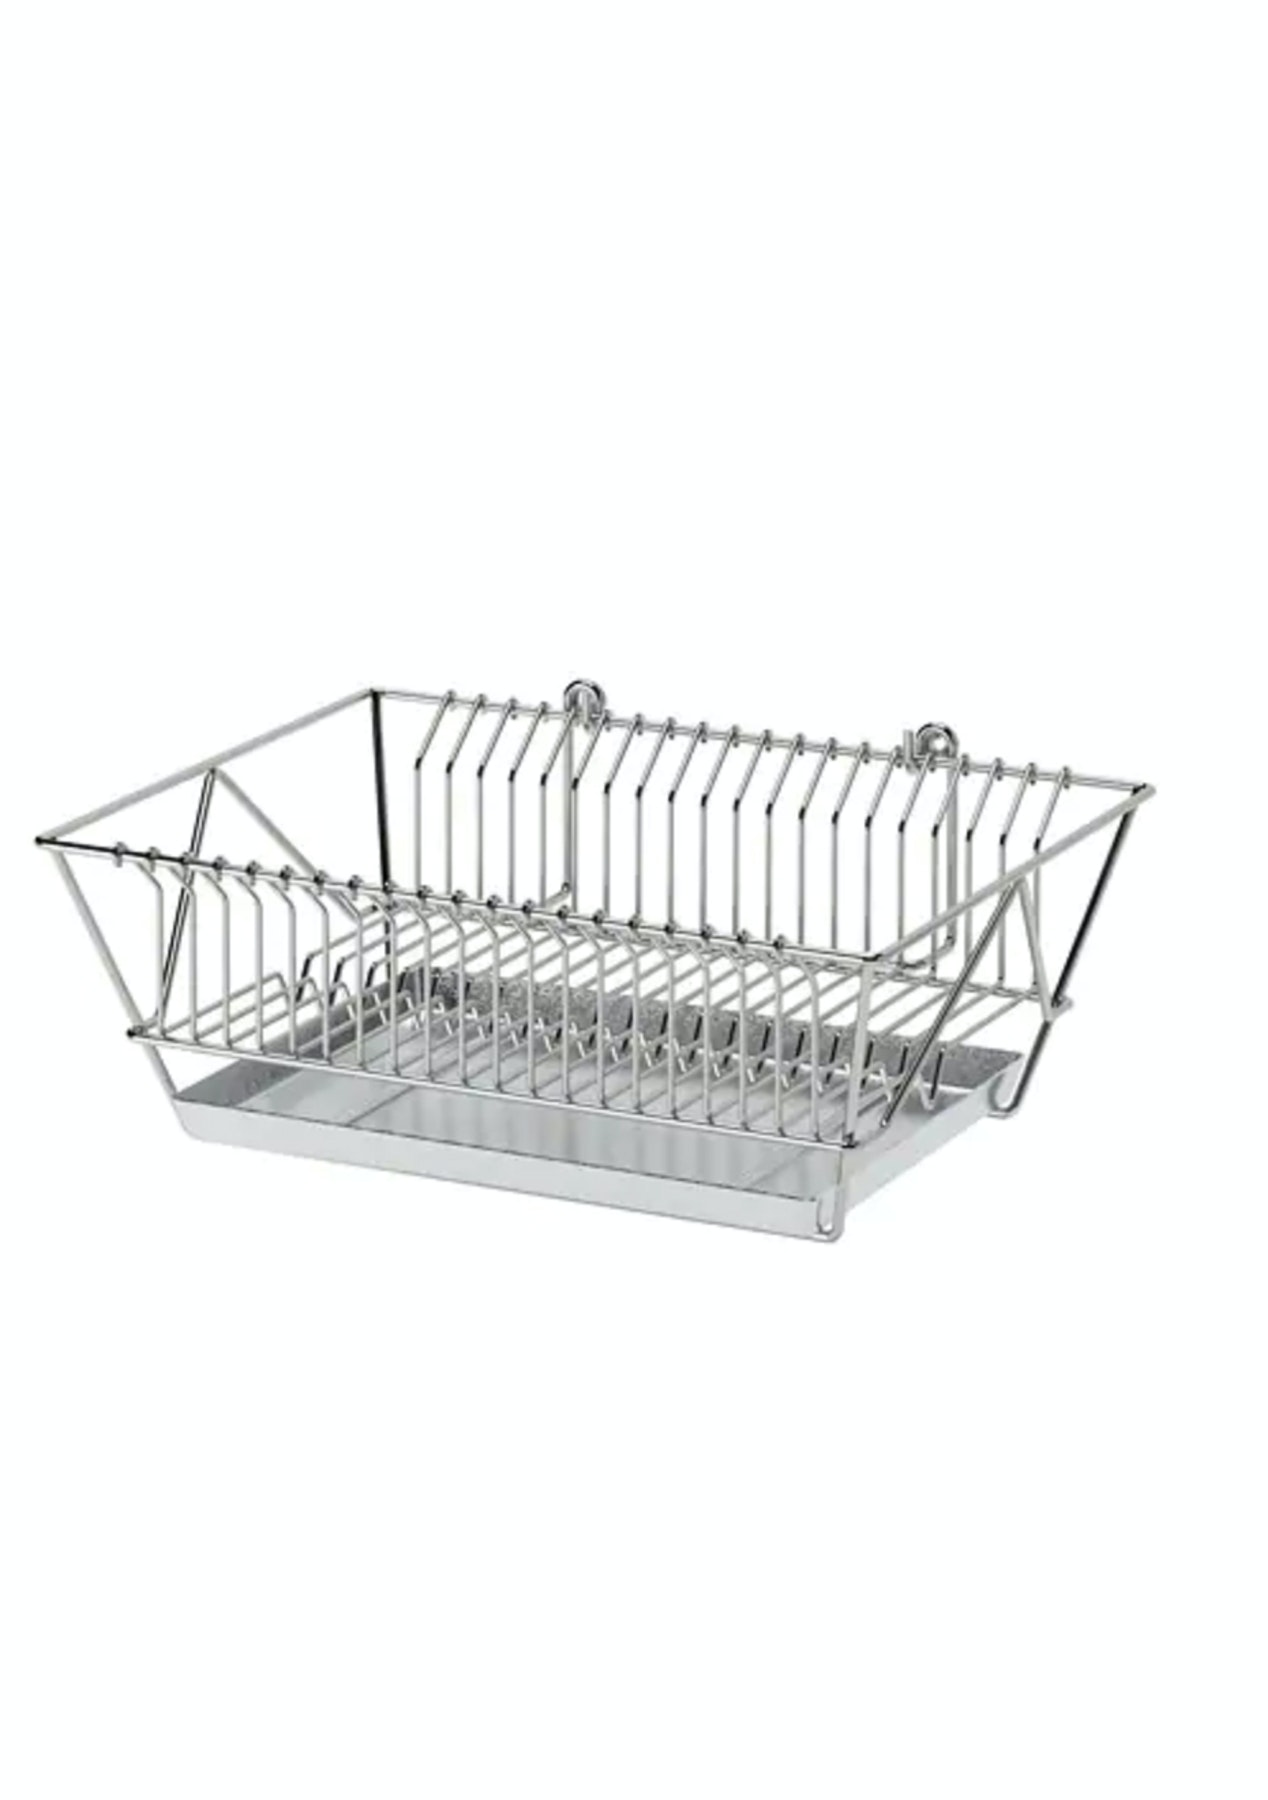 Ikea Fintorp Dish Drainer Nickel Plated